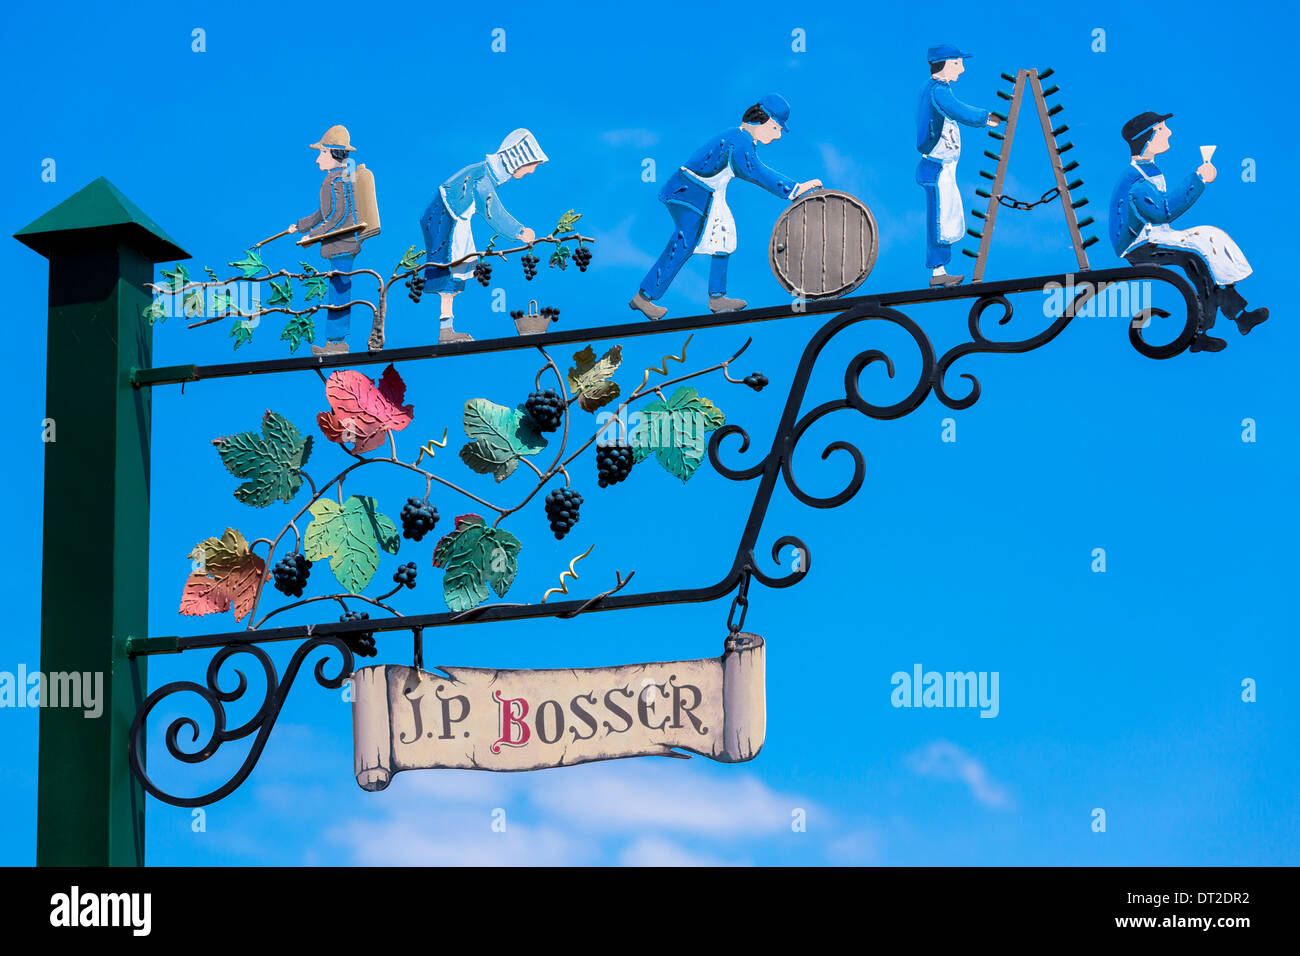 Sign showing champagne wine production at individual producer J.P. Bosser in Hautvillers near Epernay, Champagne-Ardenne, France - Stock Image